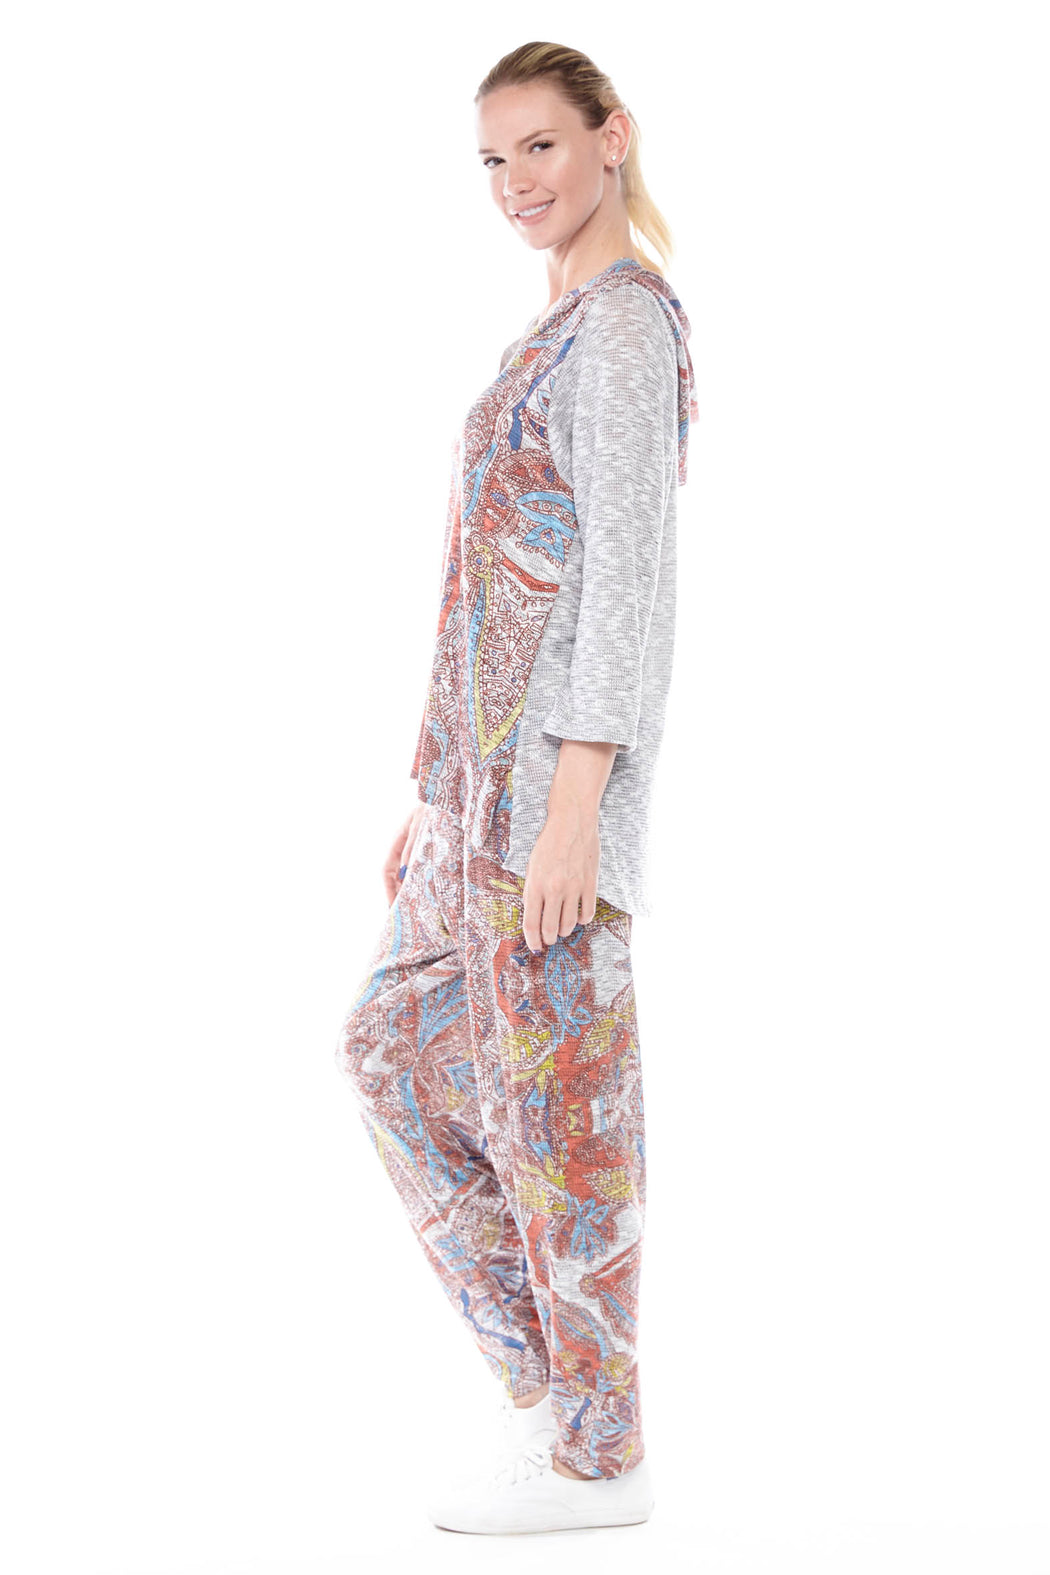 Heather Grey Jogger Pants in Paisley Print - Atelier5